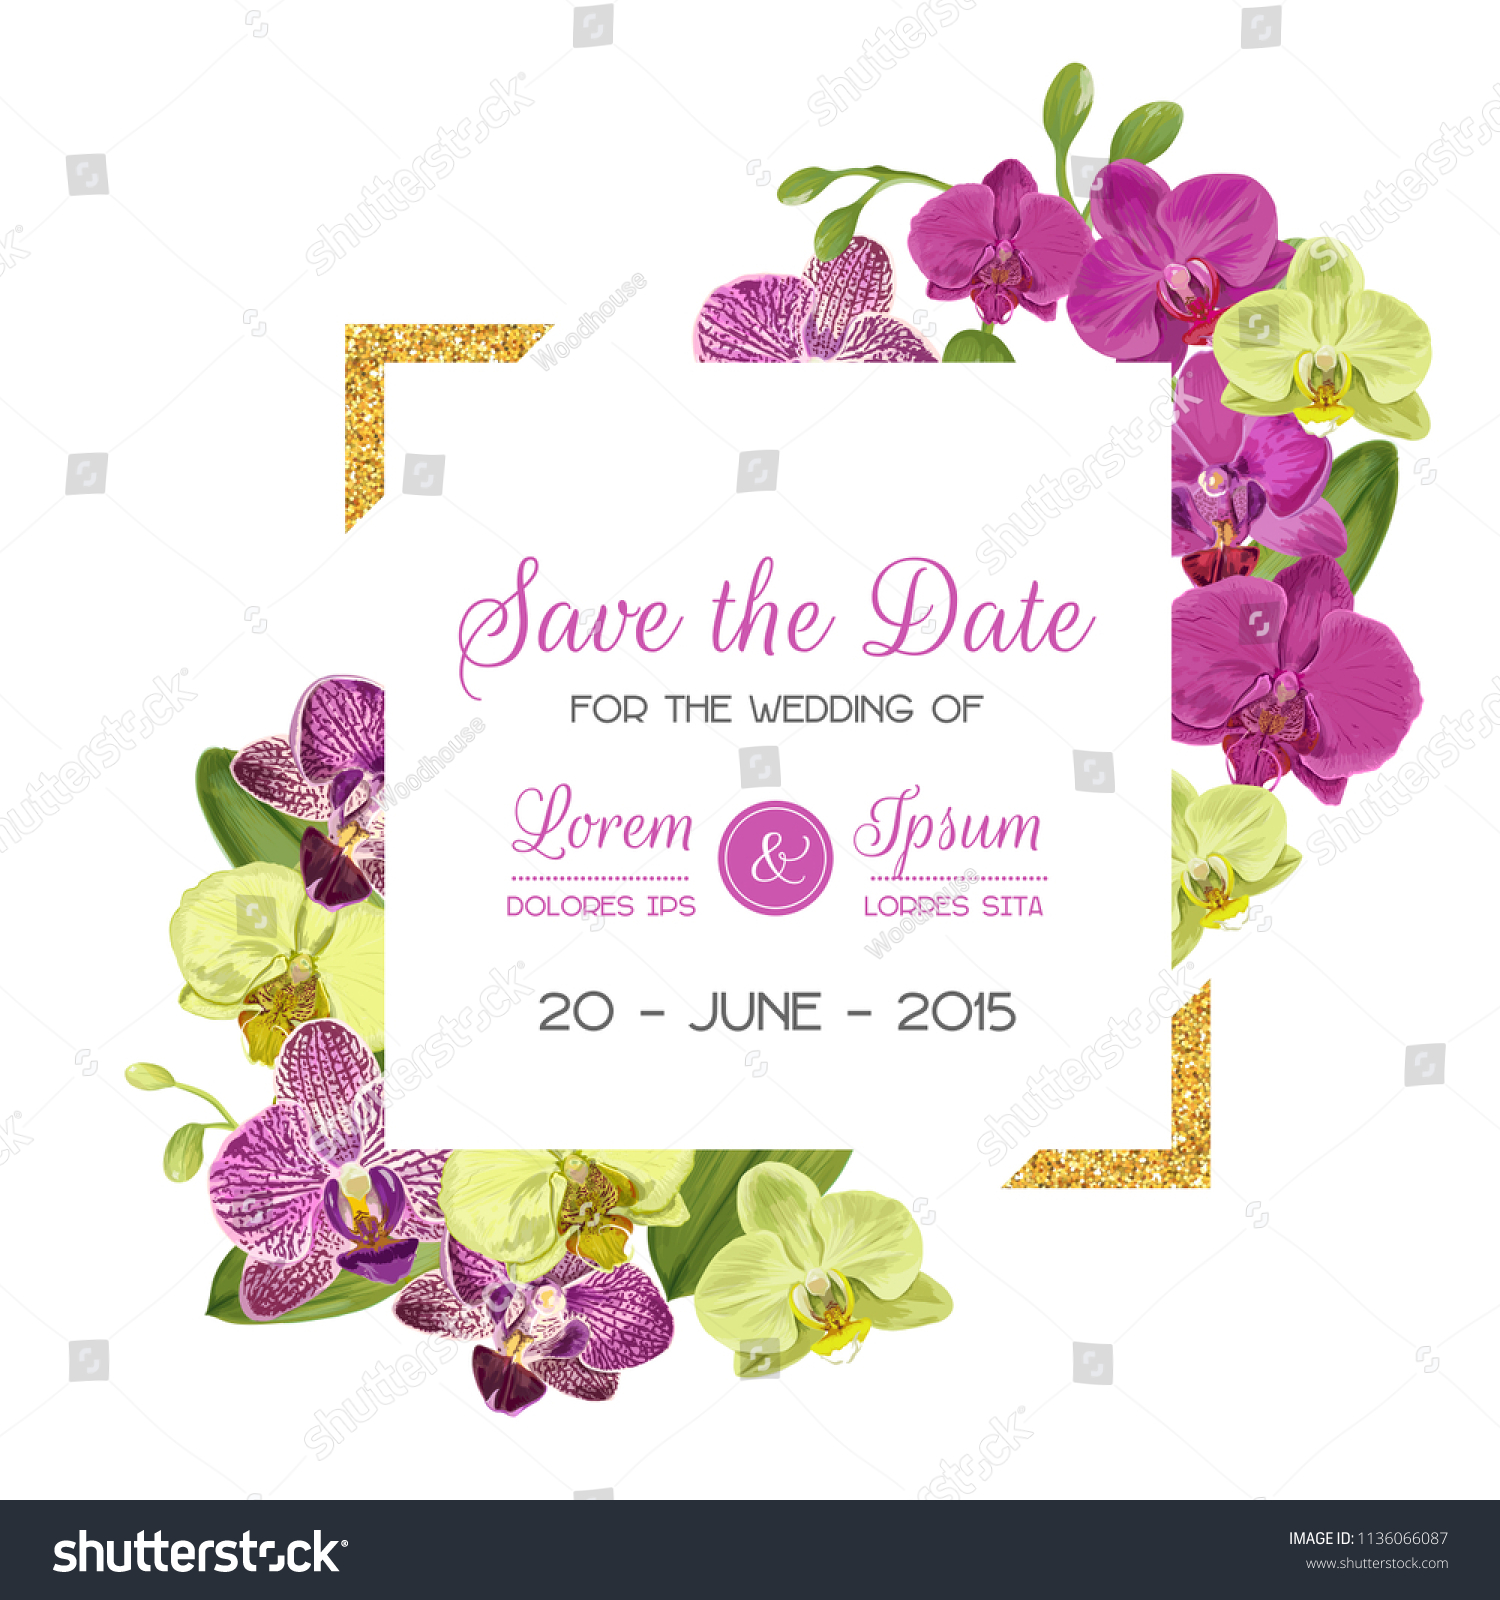 Wedding Invitation Layout Template Orchid Flowers Stock Vector ...